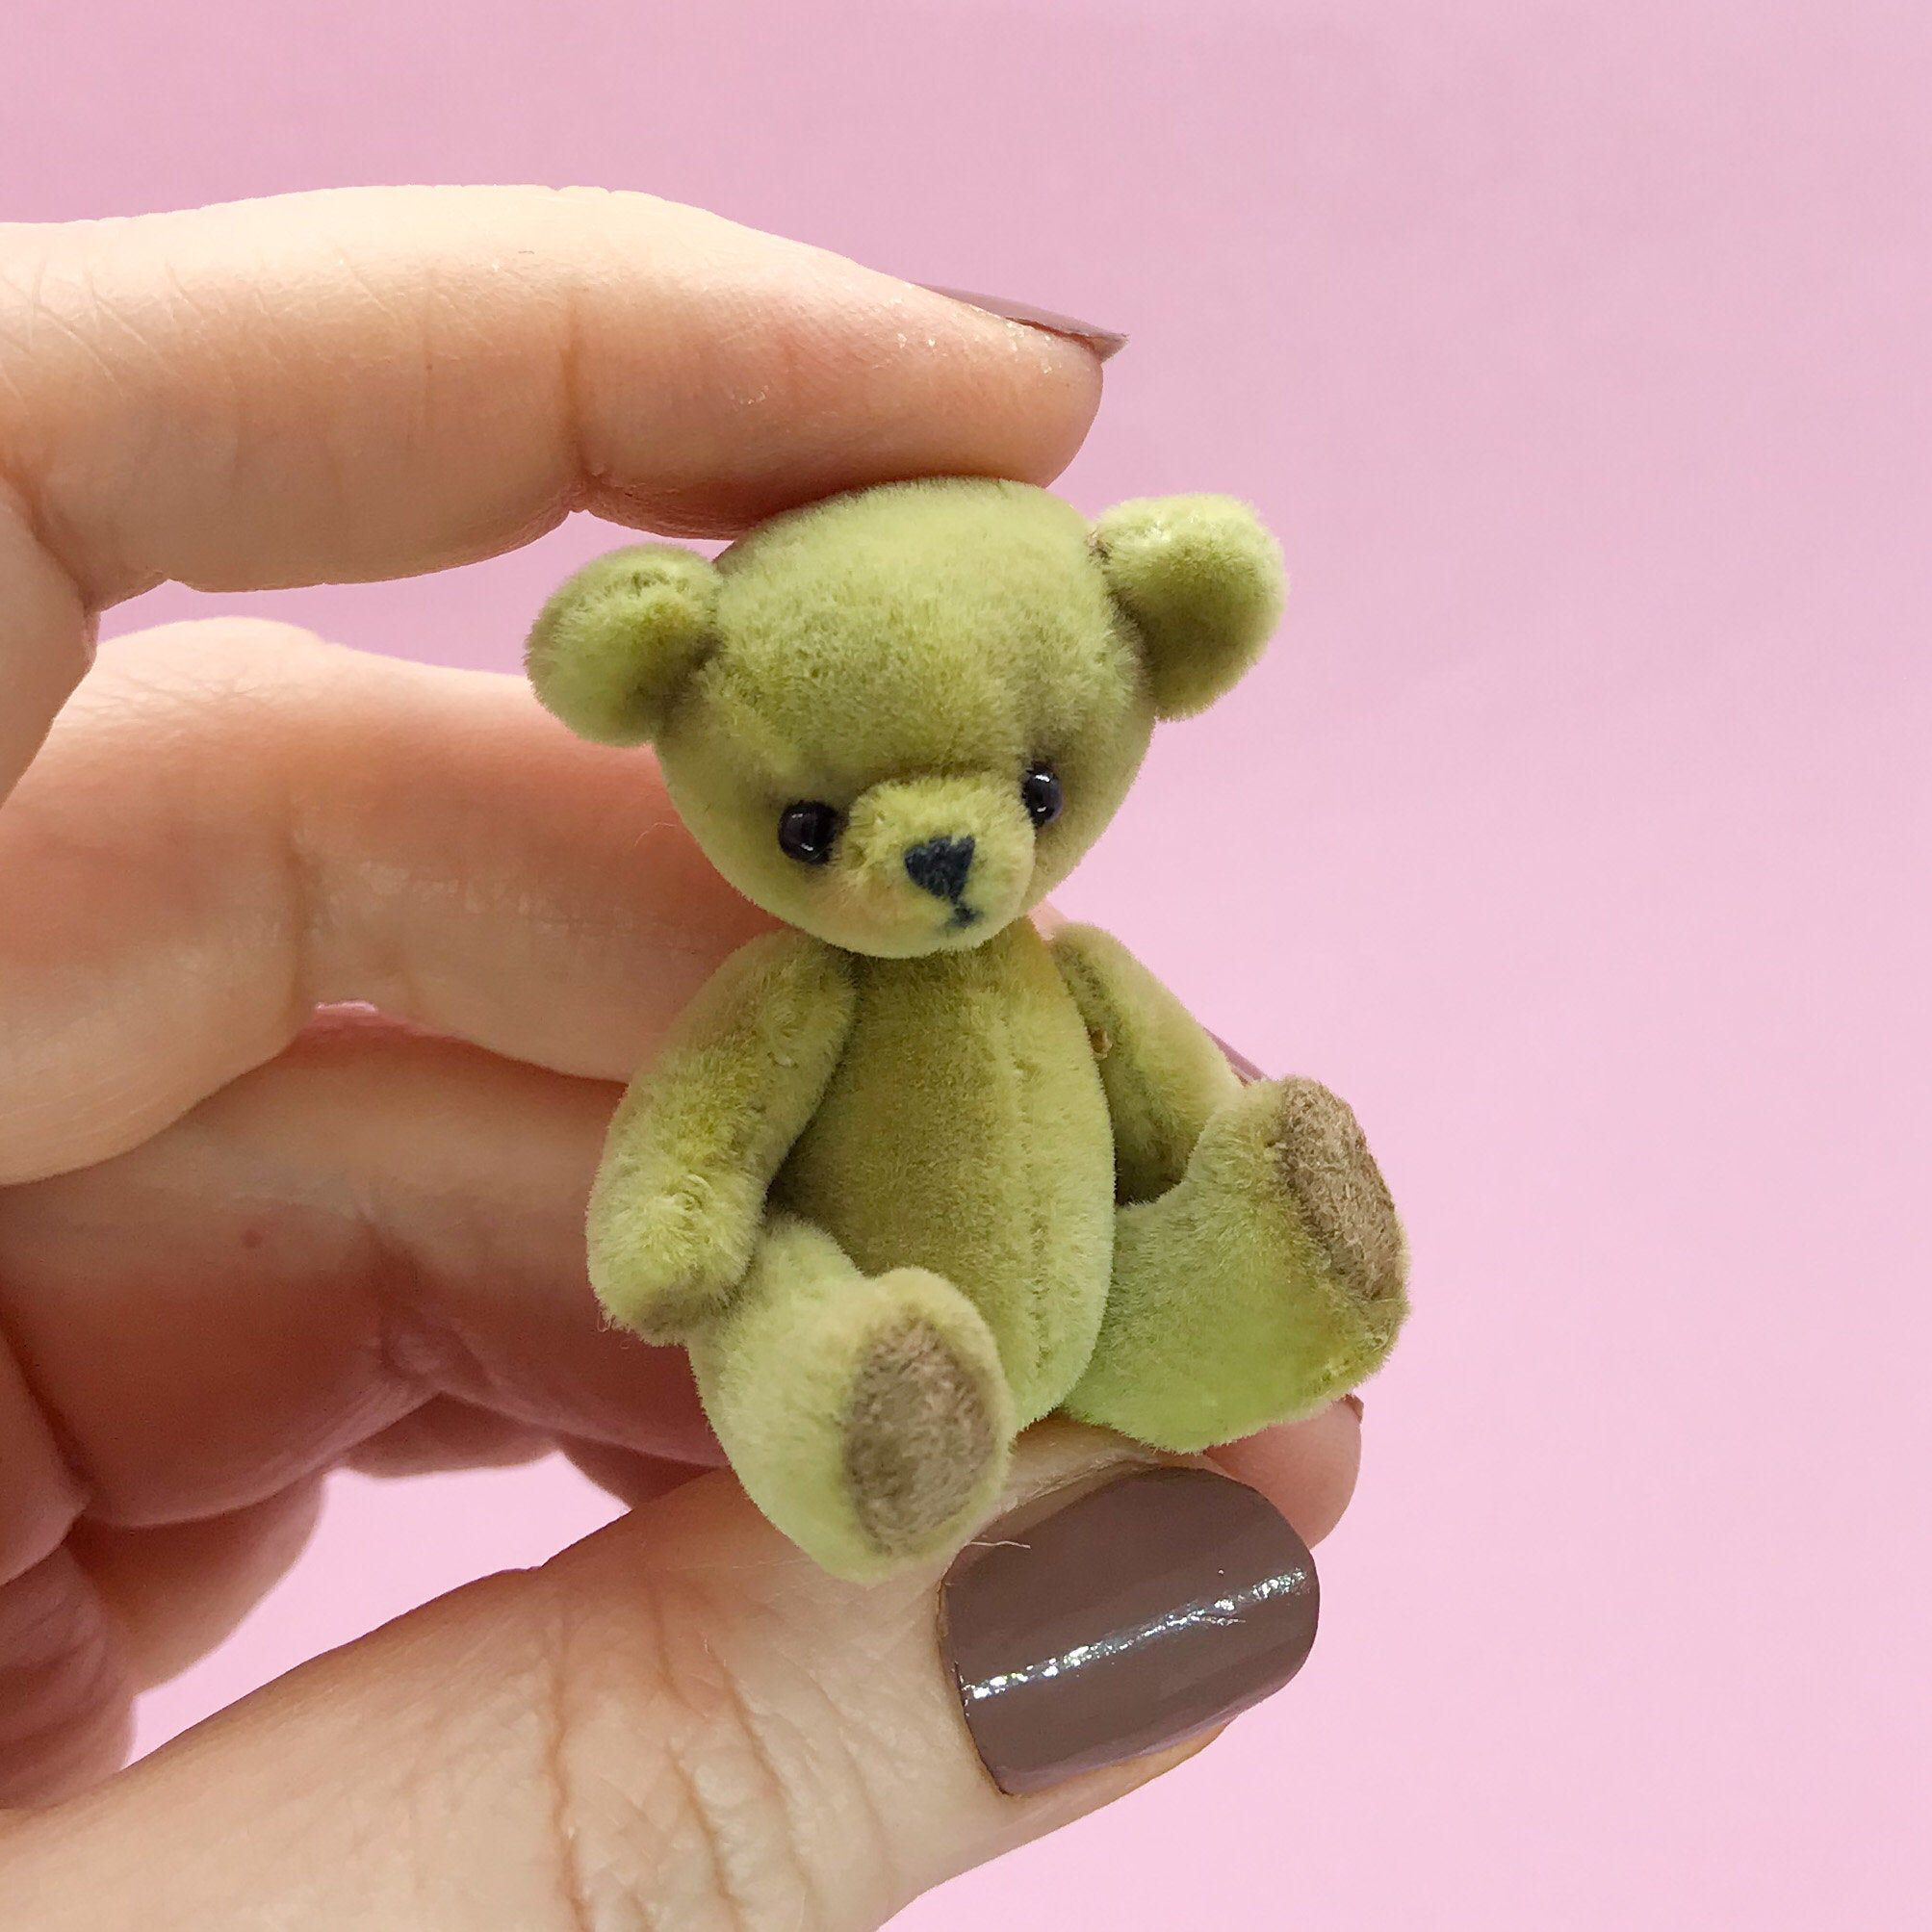 Excited To Share The Latest Addition To My Etsy Shop Teddy Bear Olive Color 1 75 4 5 Cm Miniature Toy Mini Teddy B Mini Teddy Bears Miniature Toys Teddy [ 2007 x 2007 Pixel ]